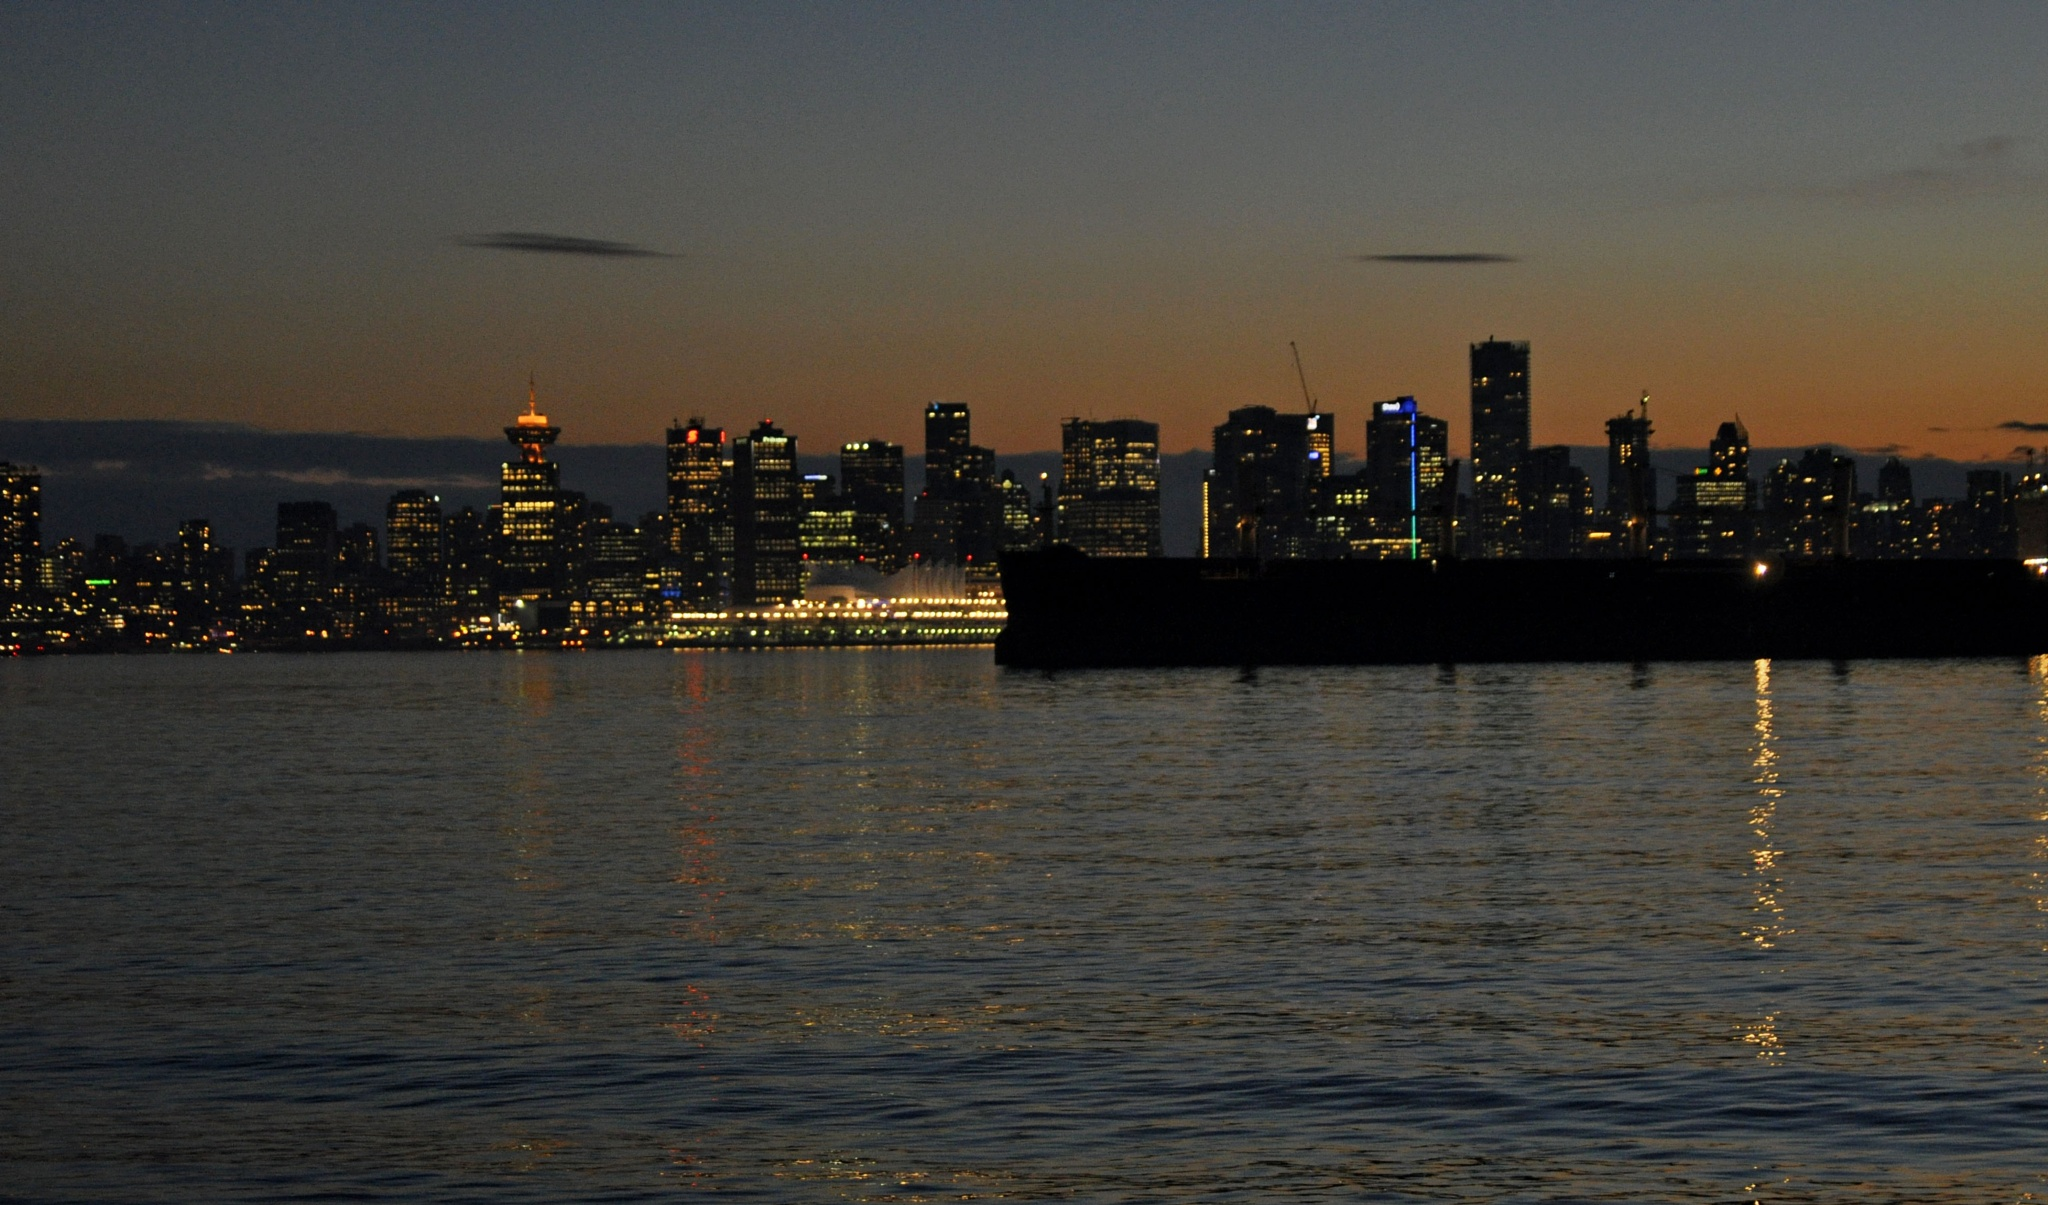 A Vancouver Evening by Daverr